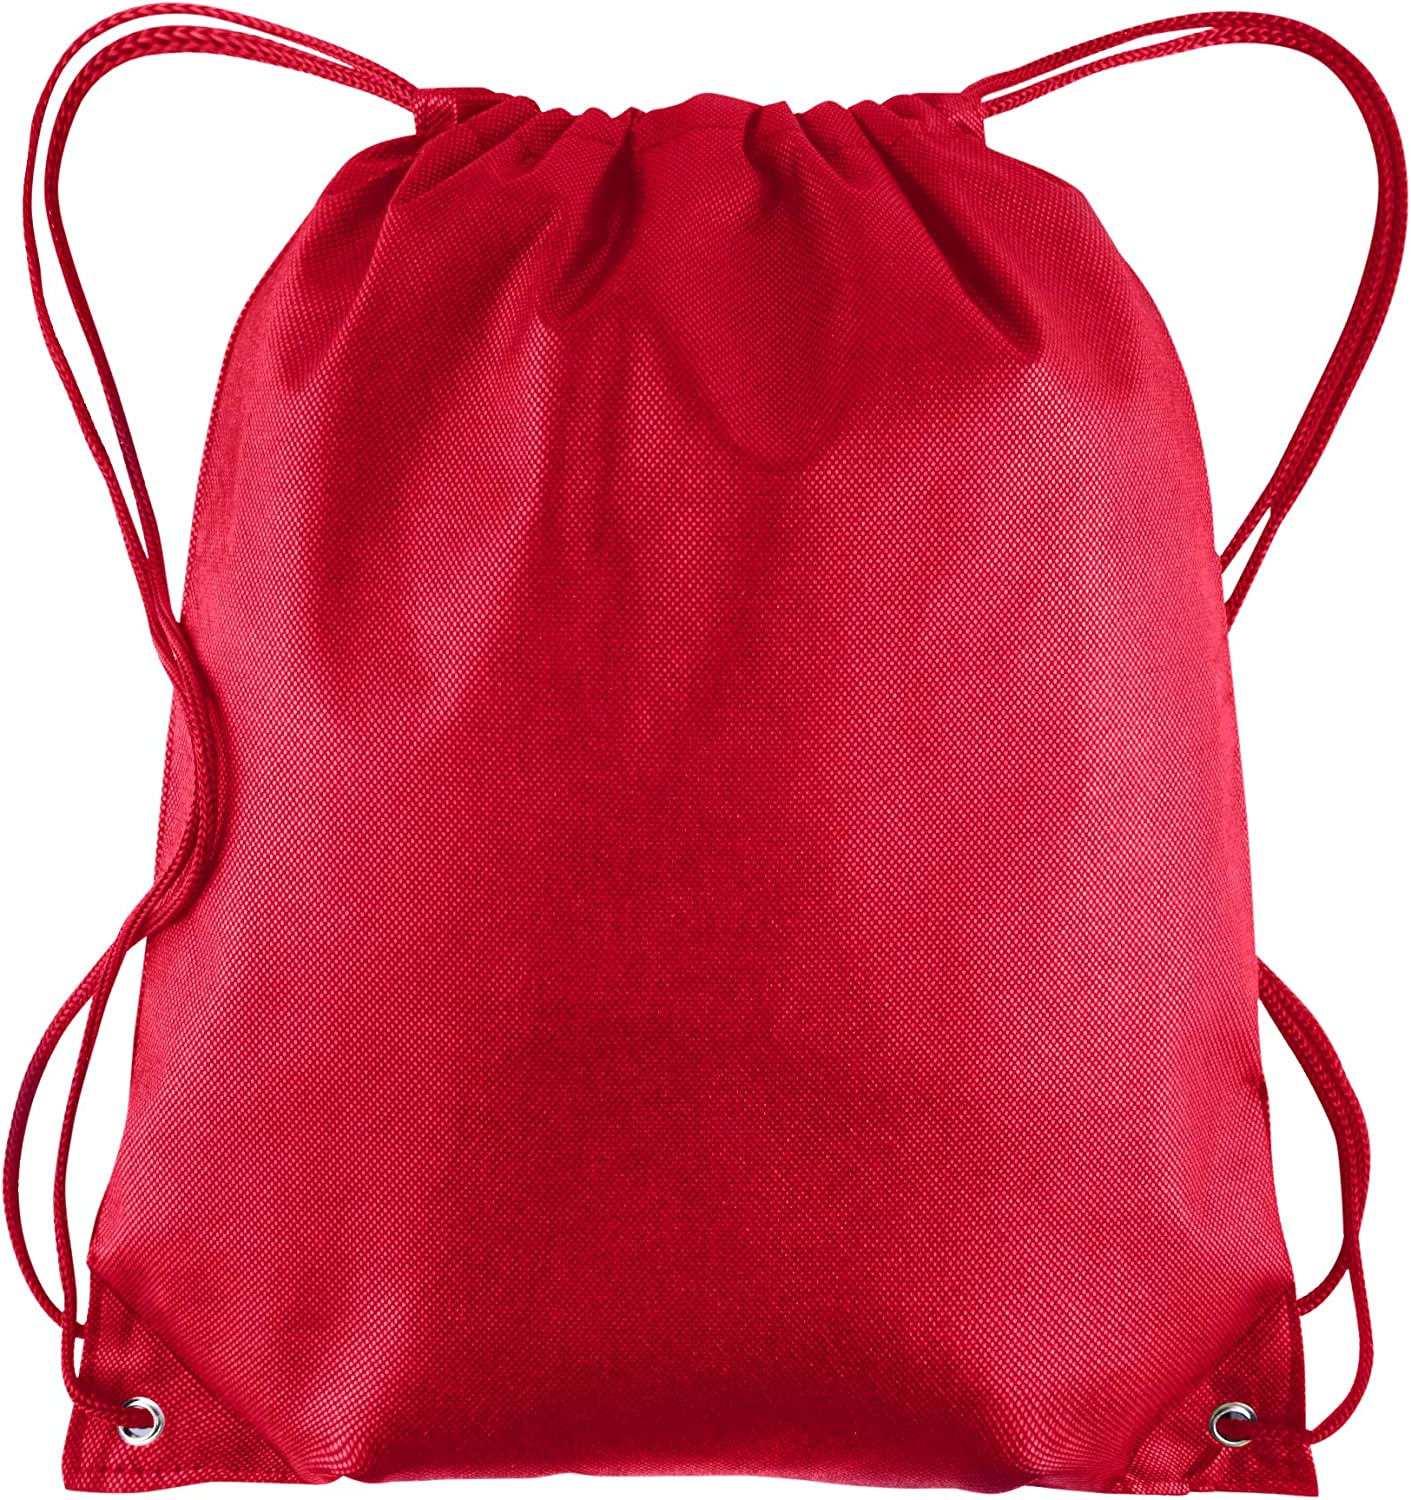 School Bags and More! Cheap Drawstring Cinch Bags for Kids 25 Pack Unisex Wholesale Drawstring Backpacks in Bulk Gym Bags